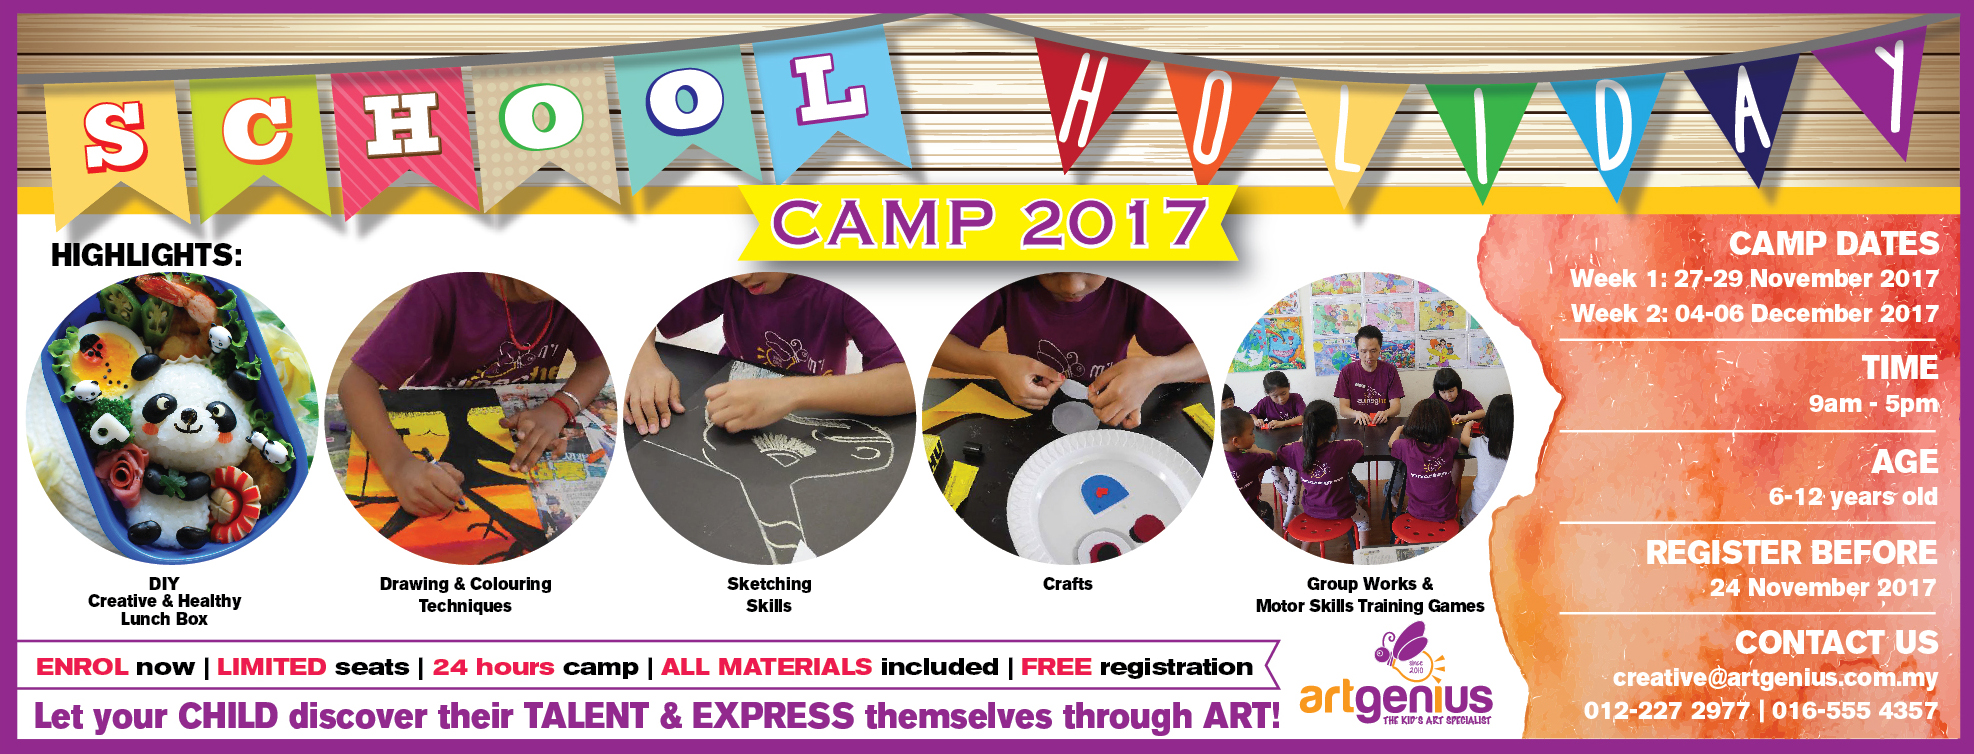 School Holiday Camp 2017